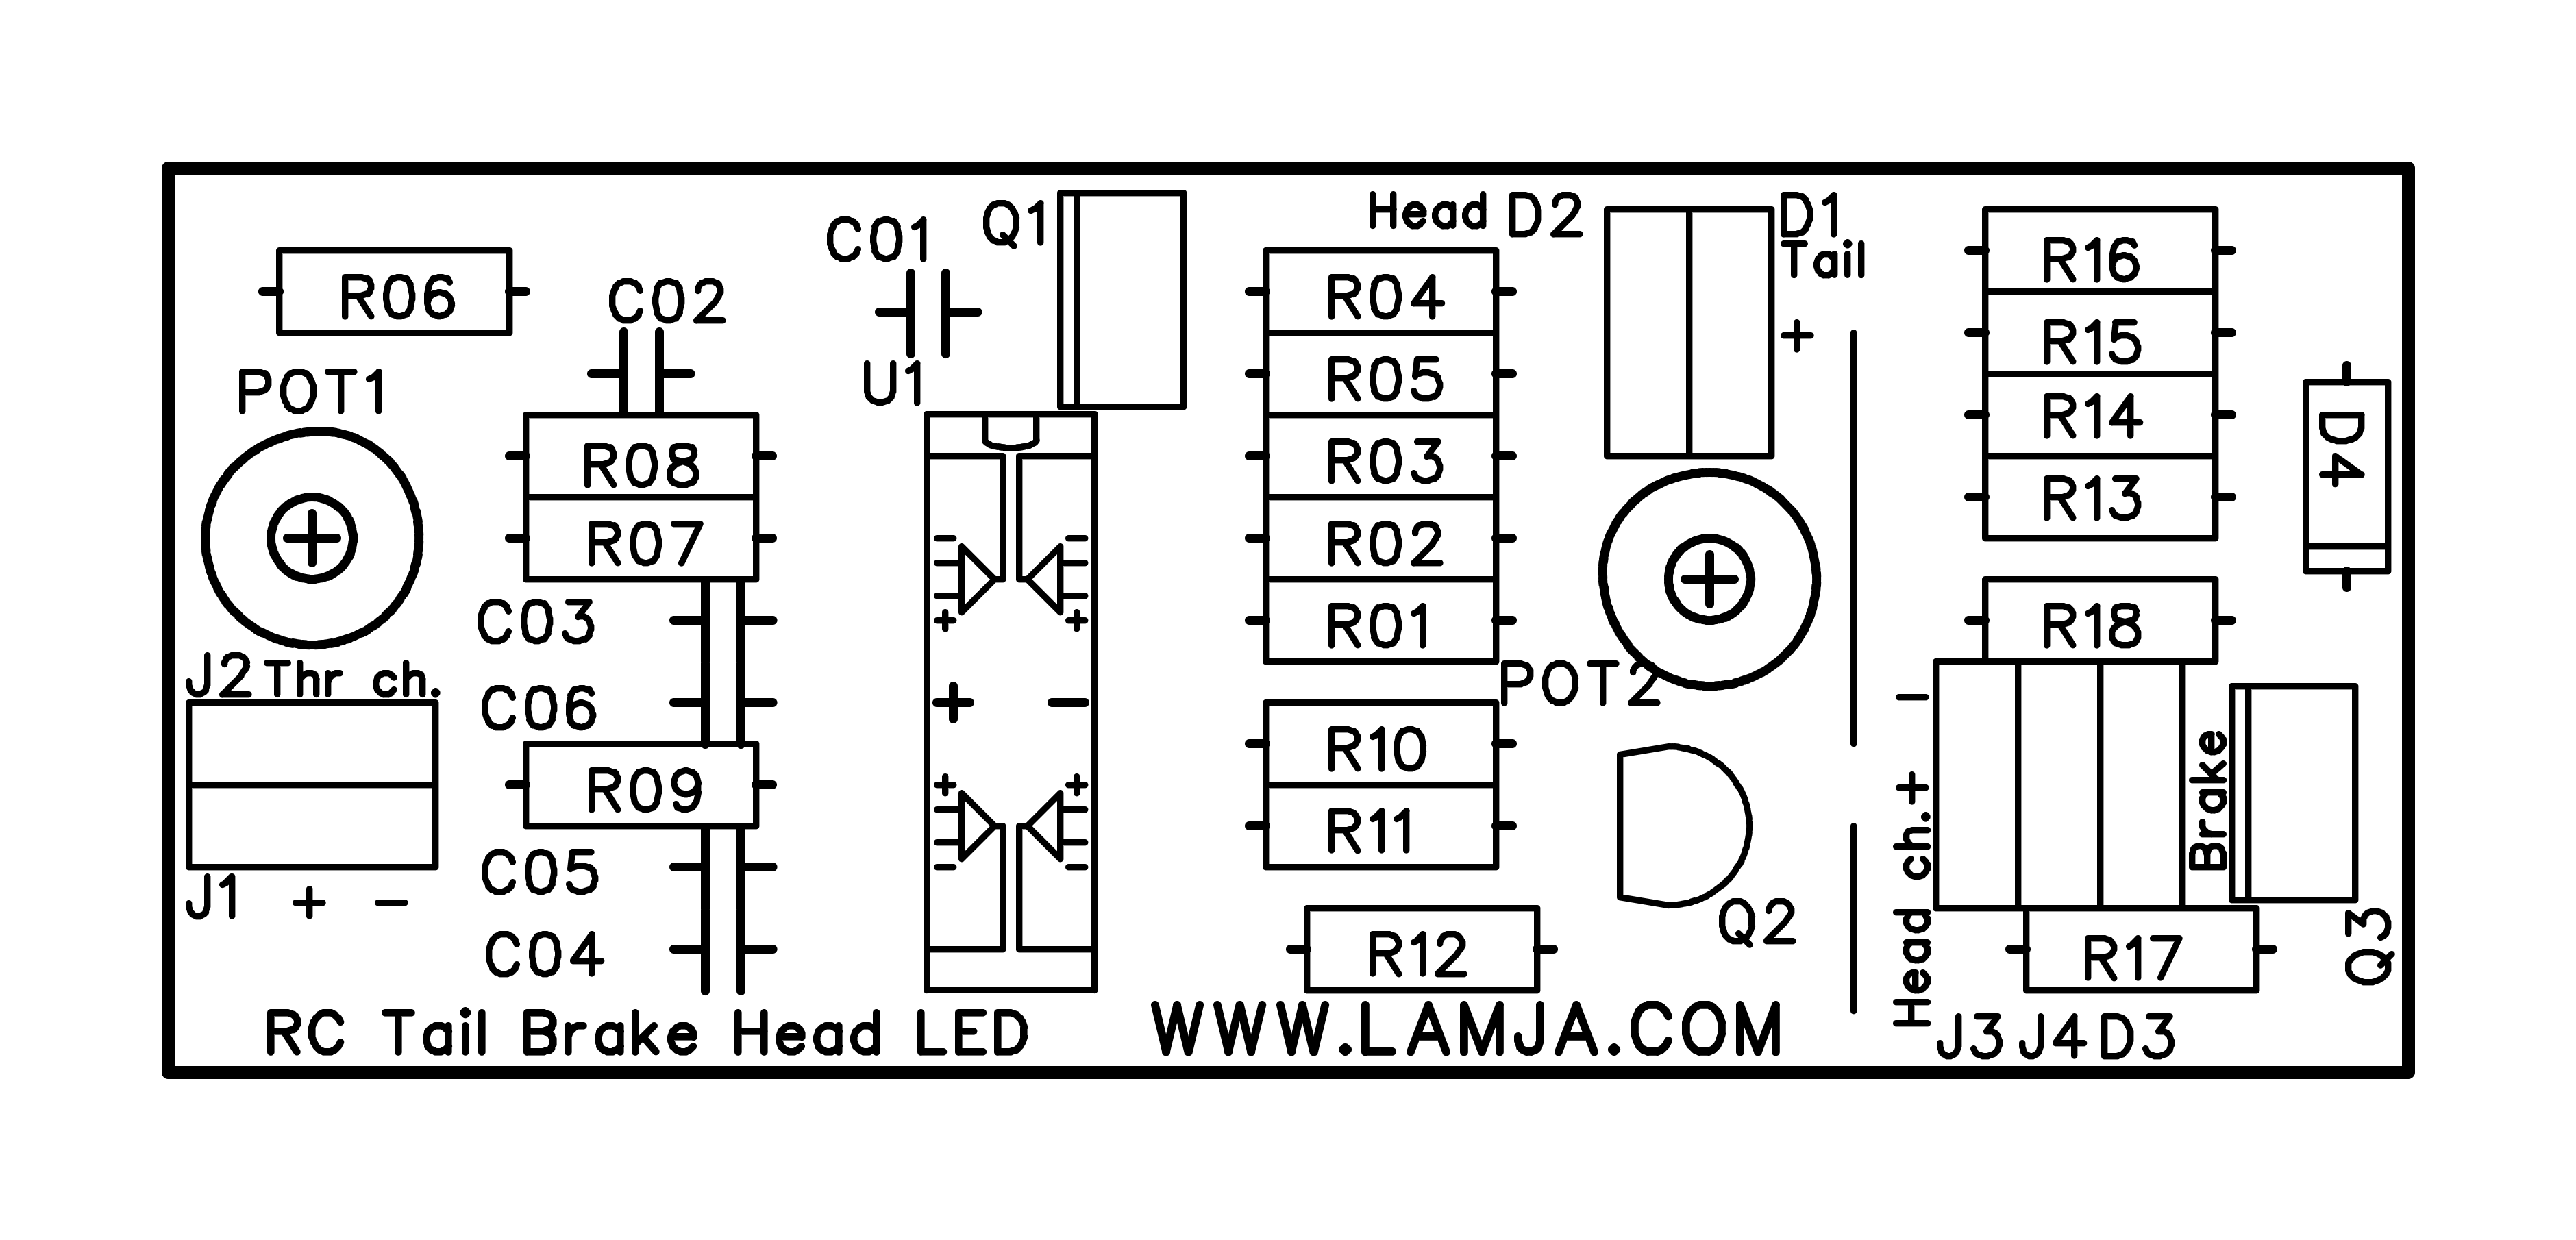 Rc Circuit Board Diagram Data Wiring Car Head Tail And Brake Lights Led Control Lamja Com Lab